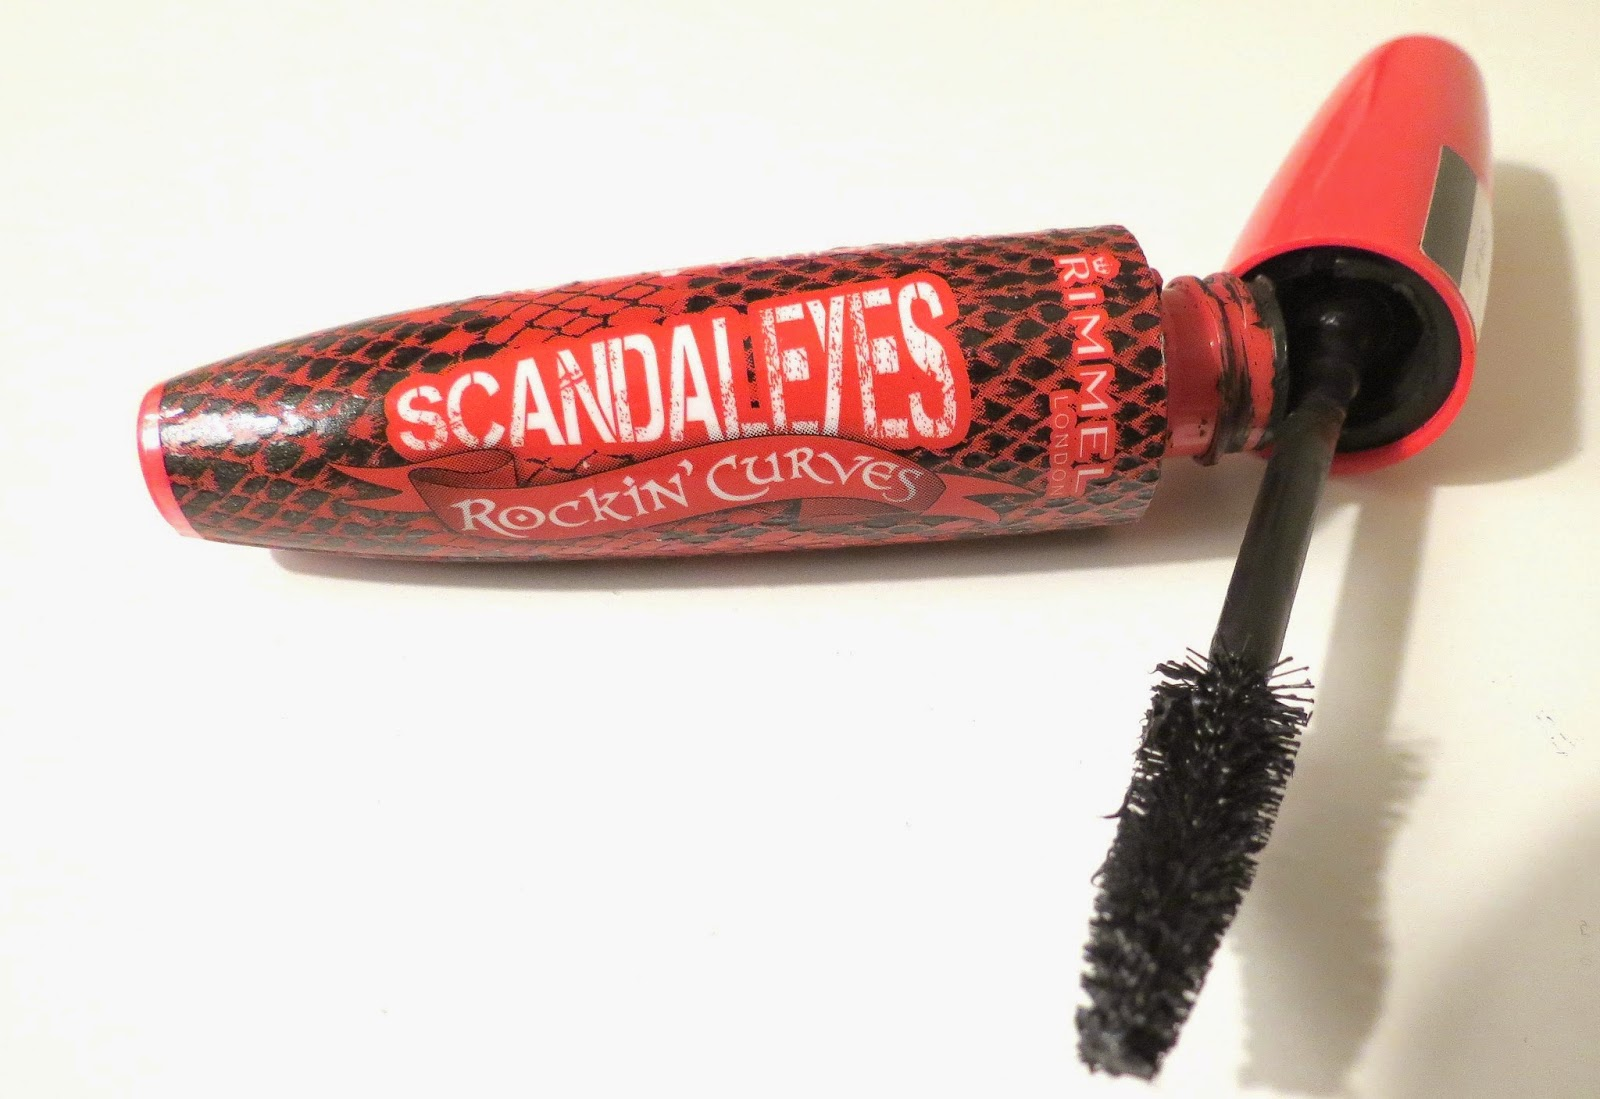 Rimmel ScandalEyes Rockin' Curves Mascara Review via www.productreviewmom.com